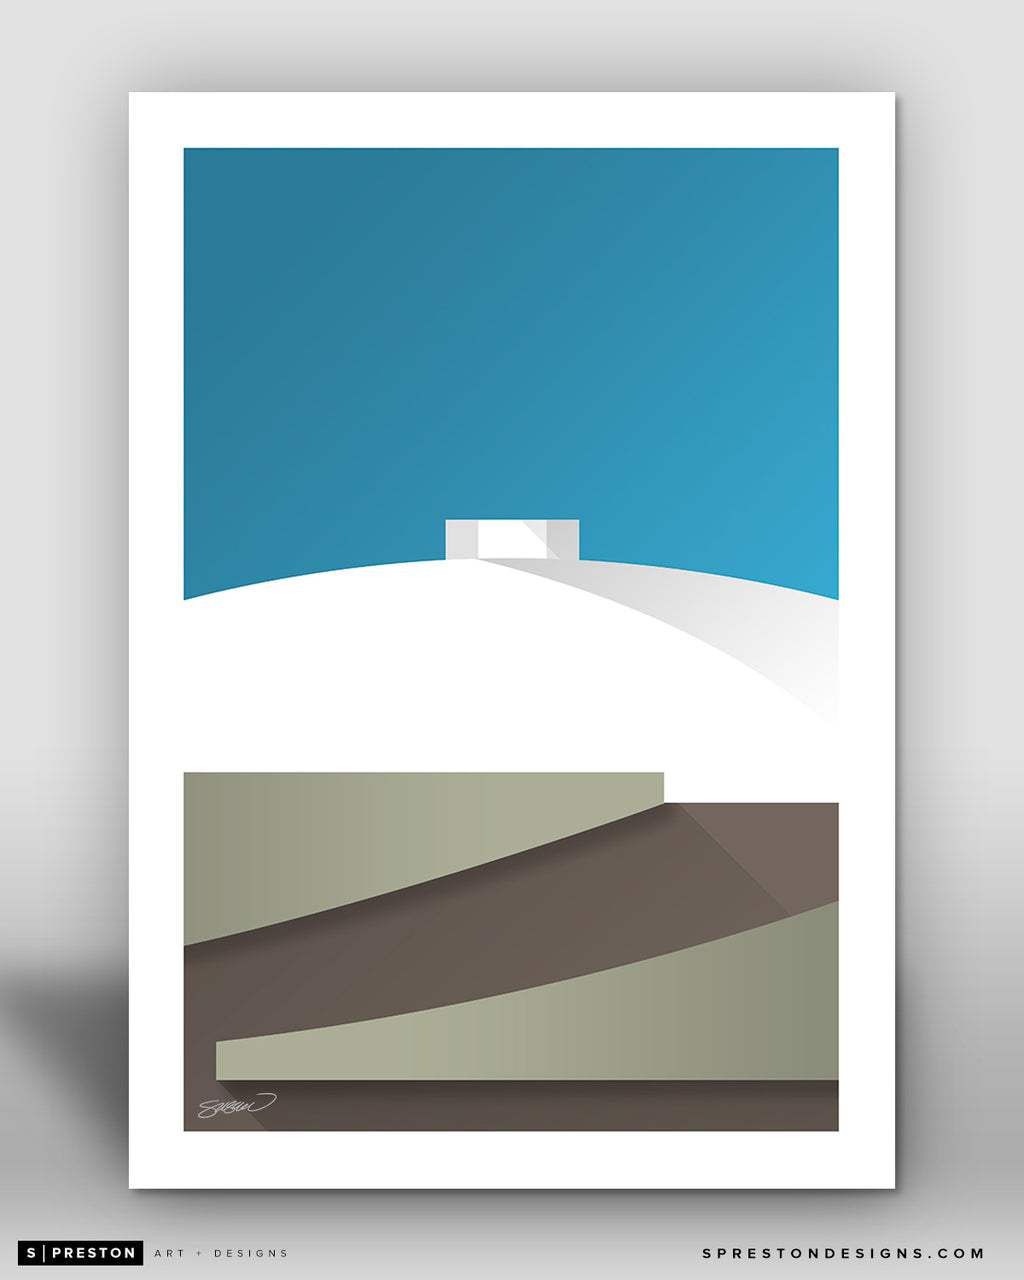 Minimalist Charles Koch Arena - Wichita State University - S. Preston